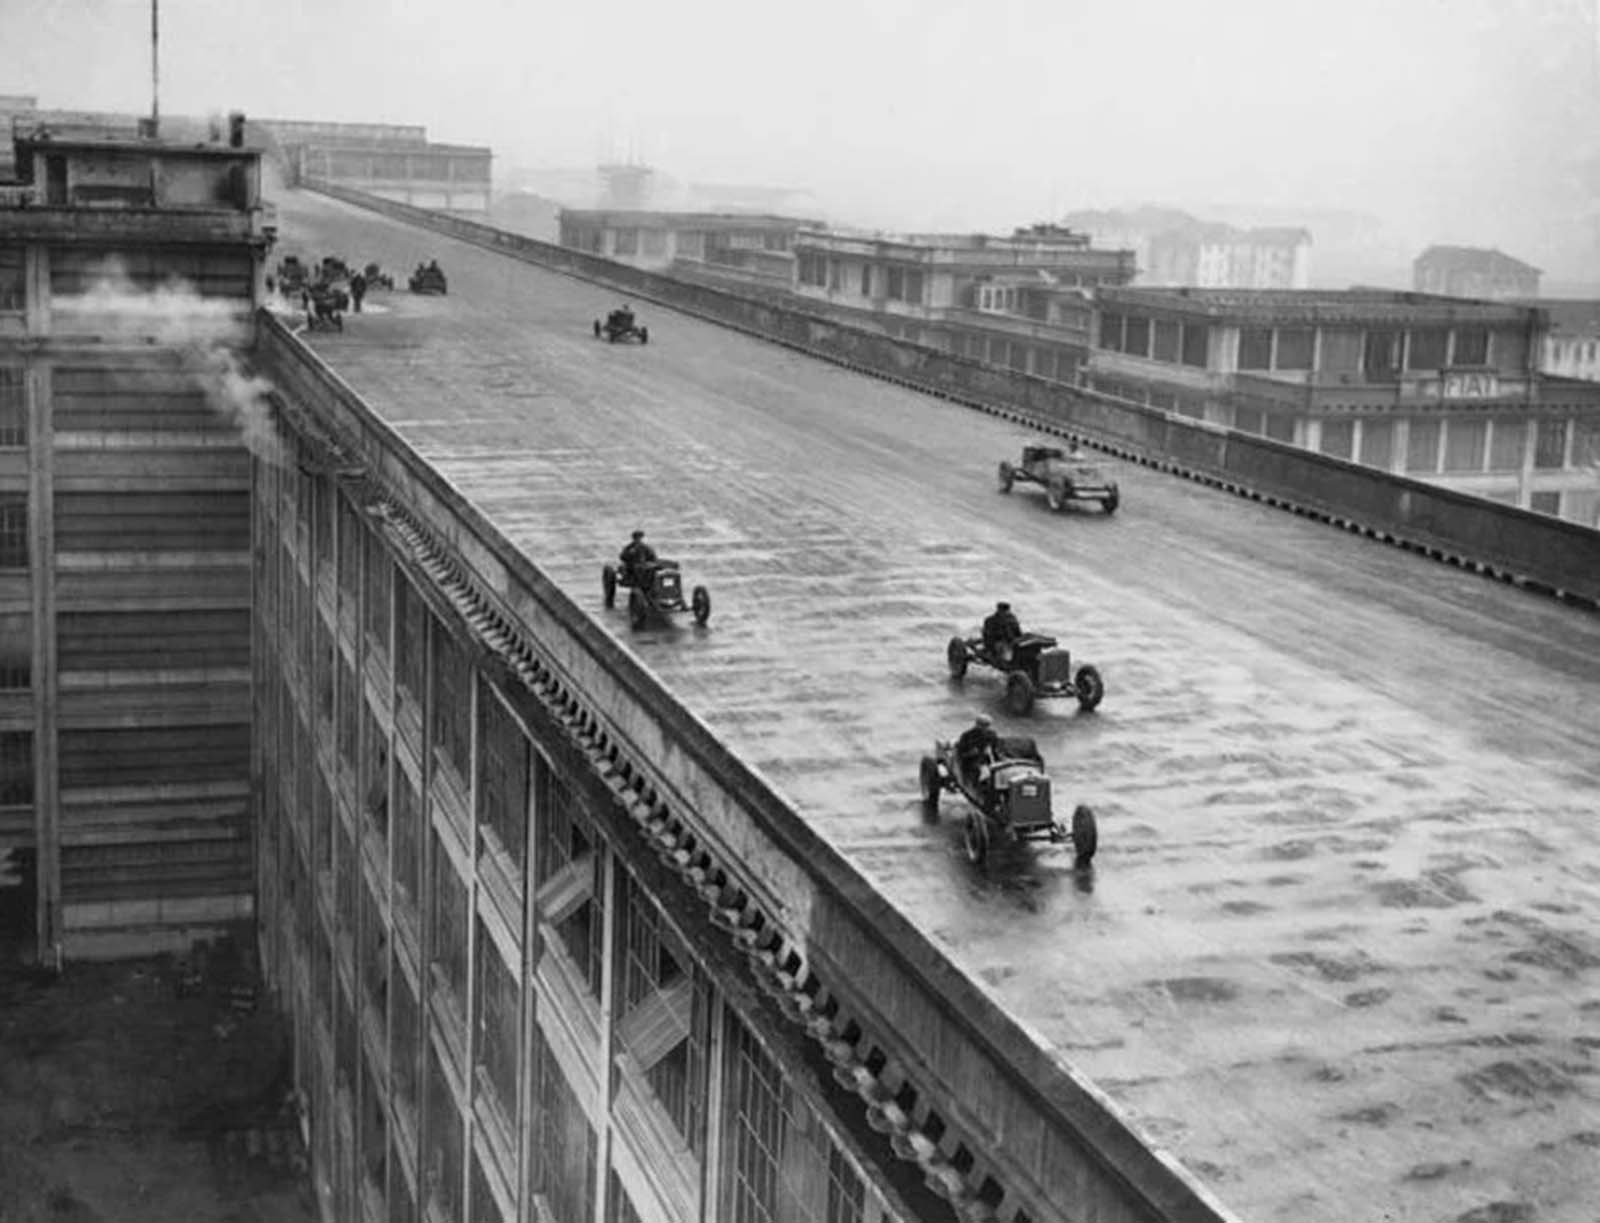 racetrack rooftop factory italy